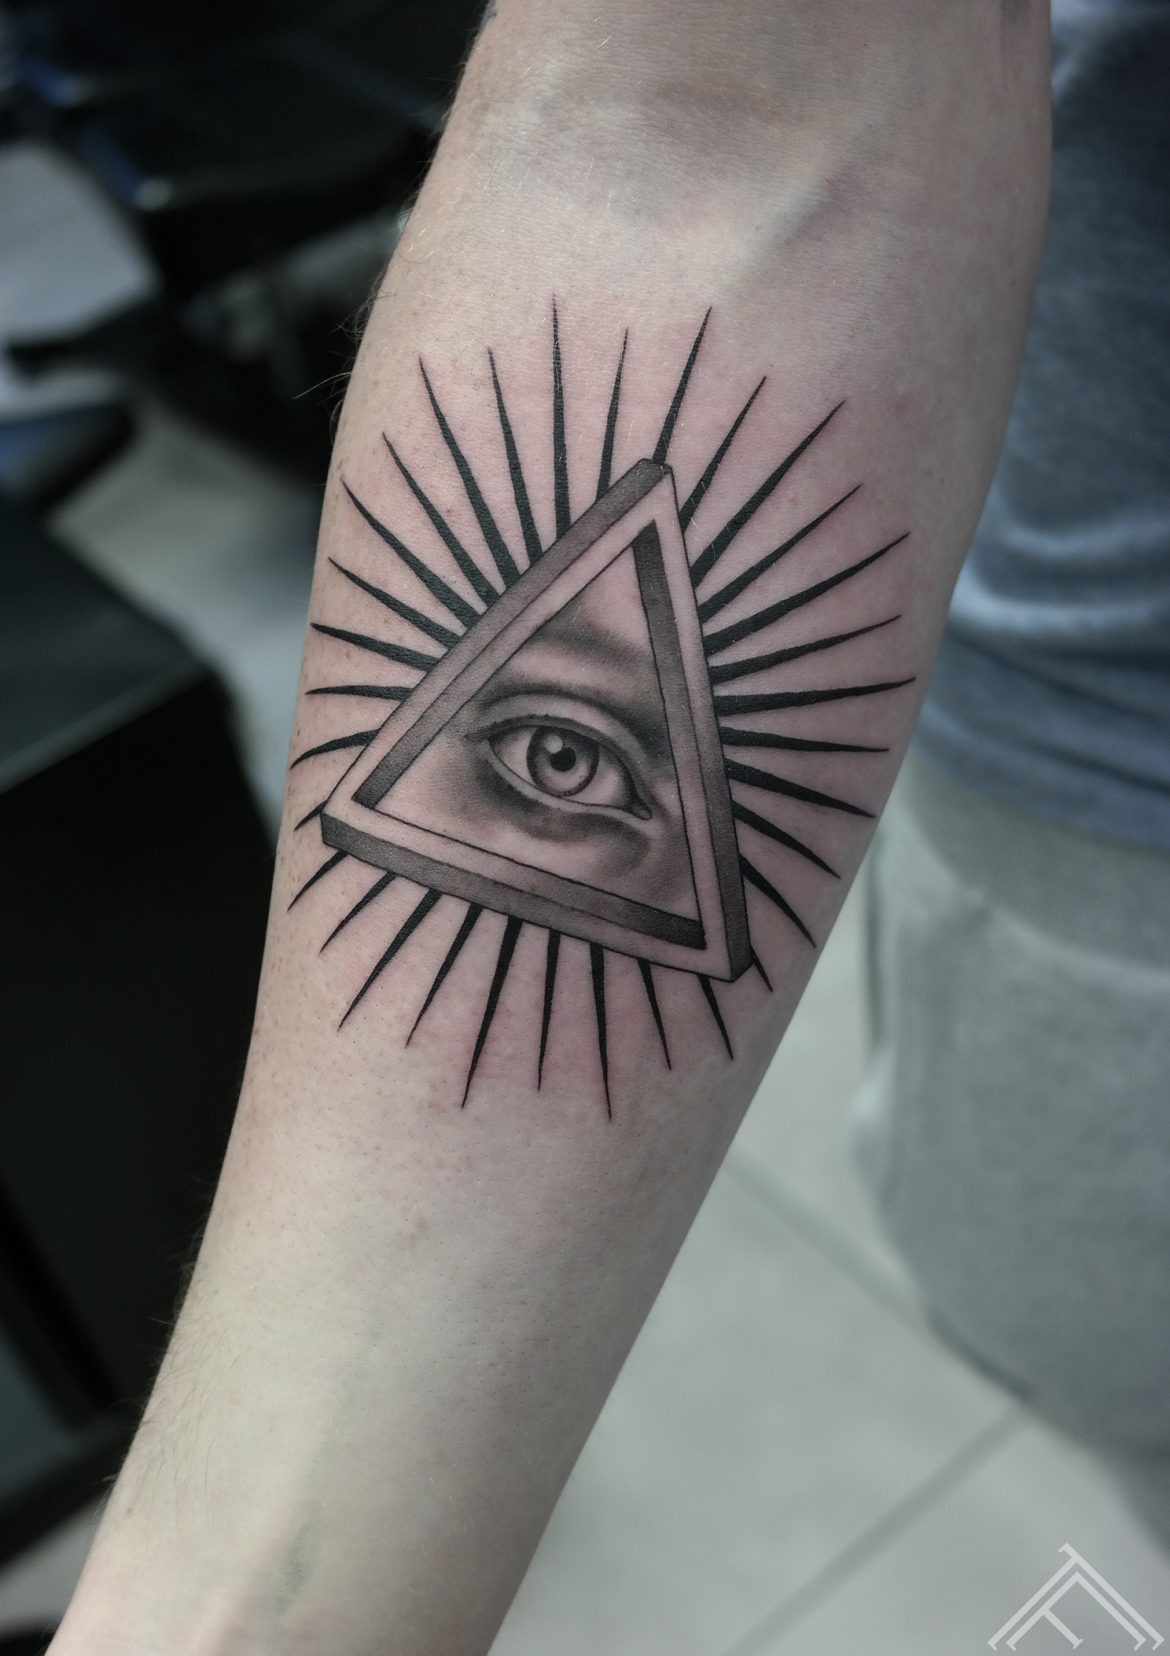 iluminati-trengle-trijsturis-eye-acs-riga-tetovejums-tattoo-riga-tattoofrequency-janissvars